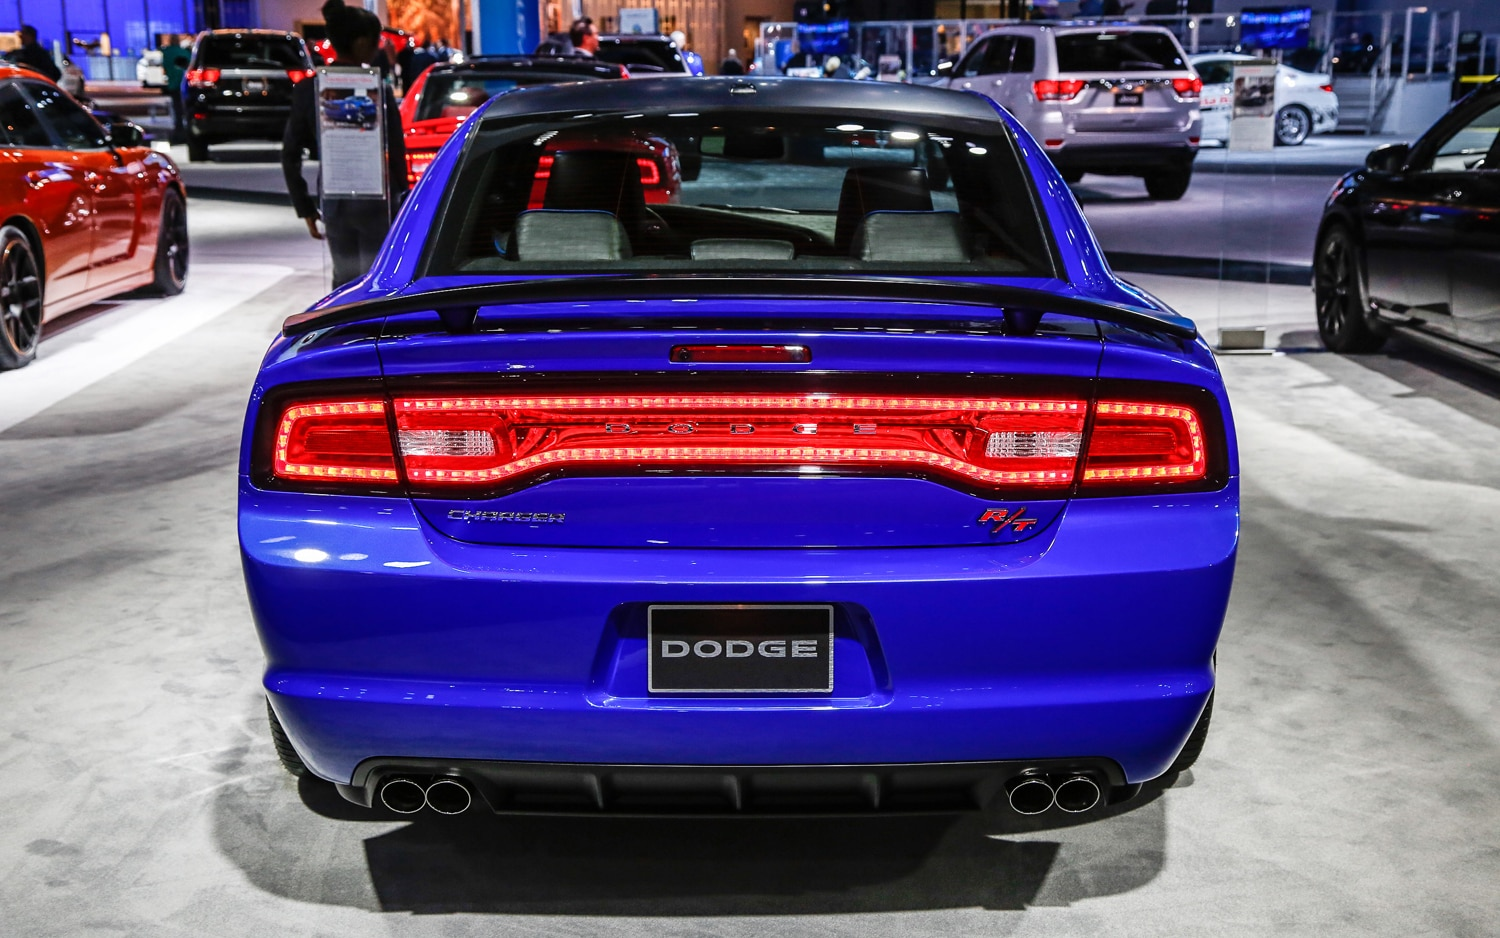 2013 Dodge Charger R/T Dressed Up In New Daytona Package